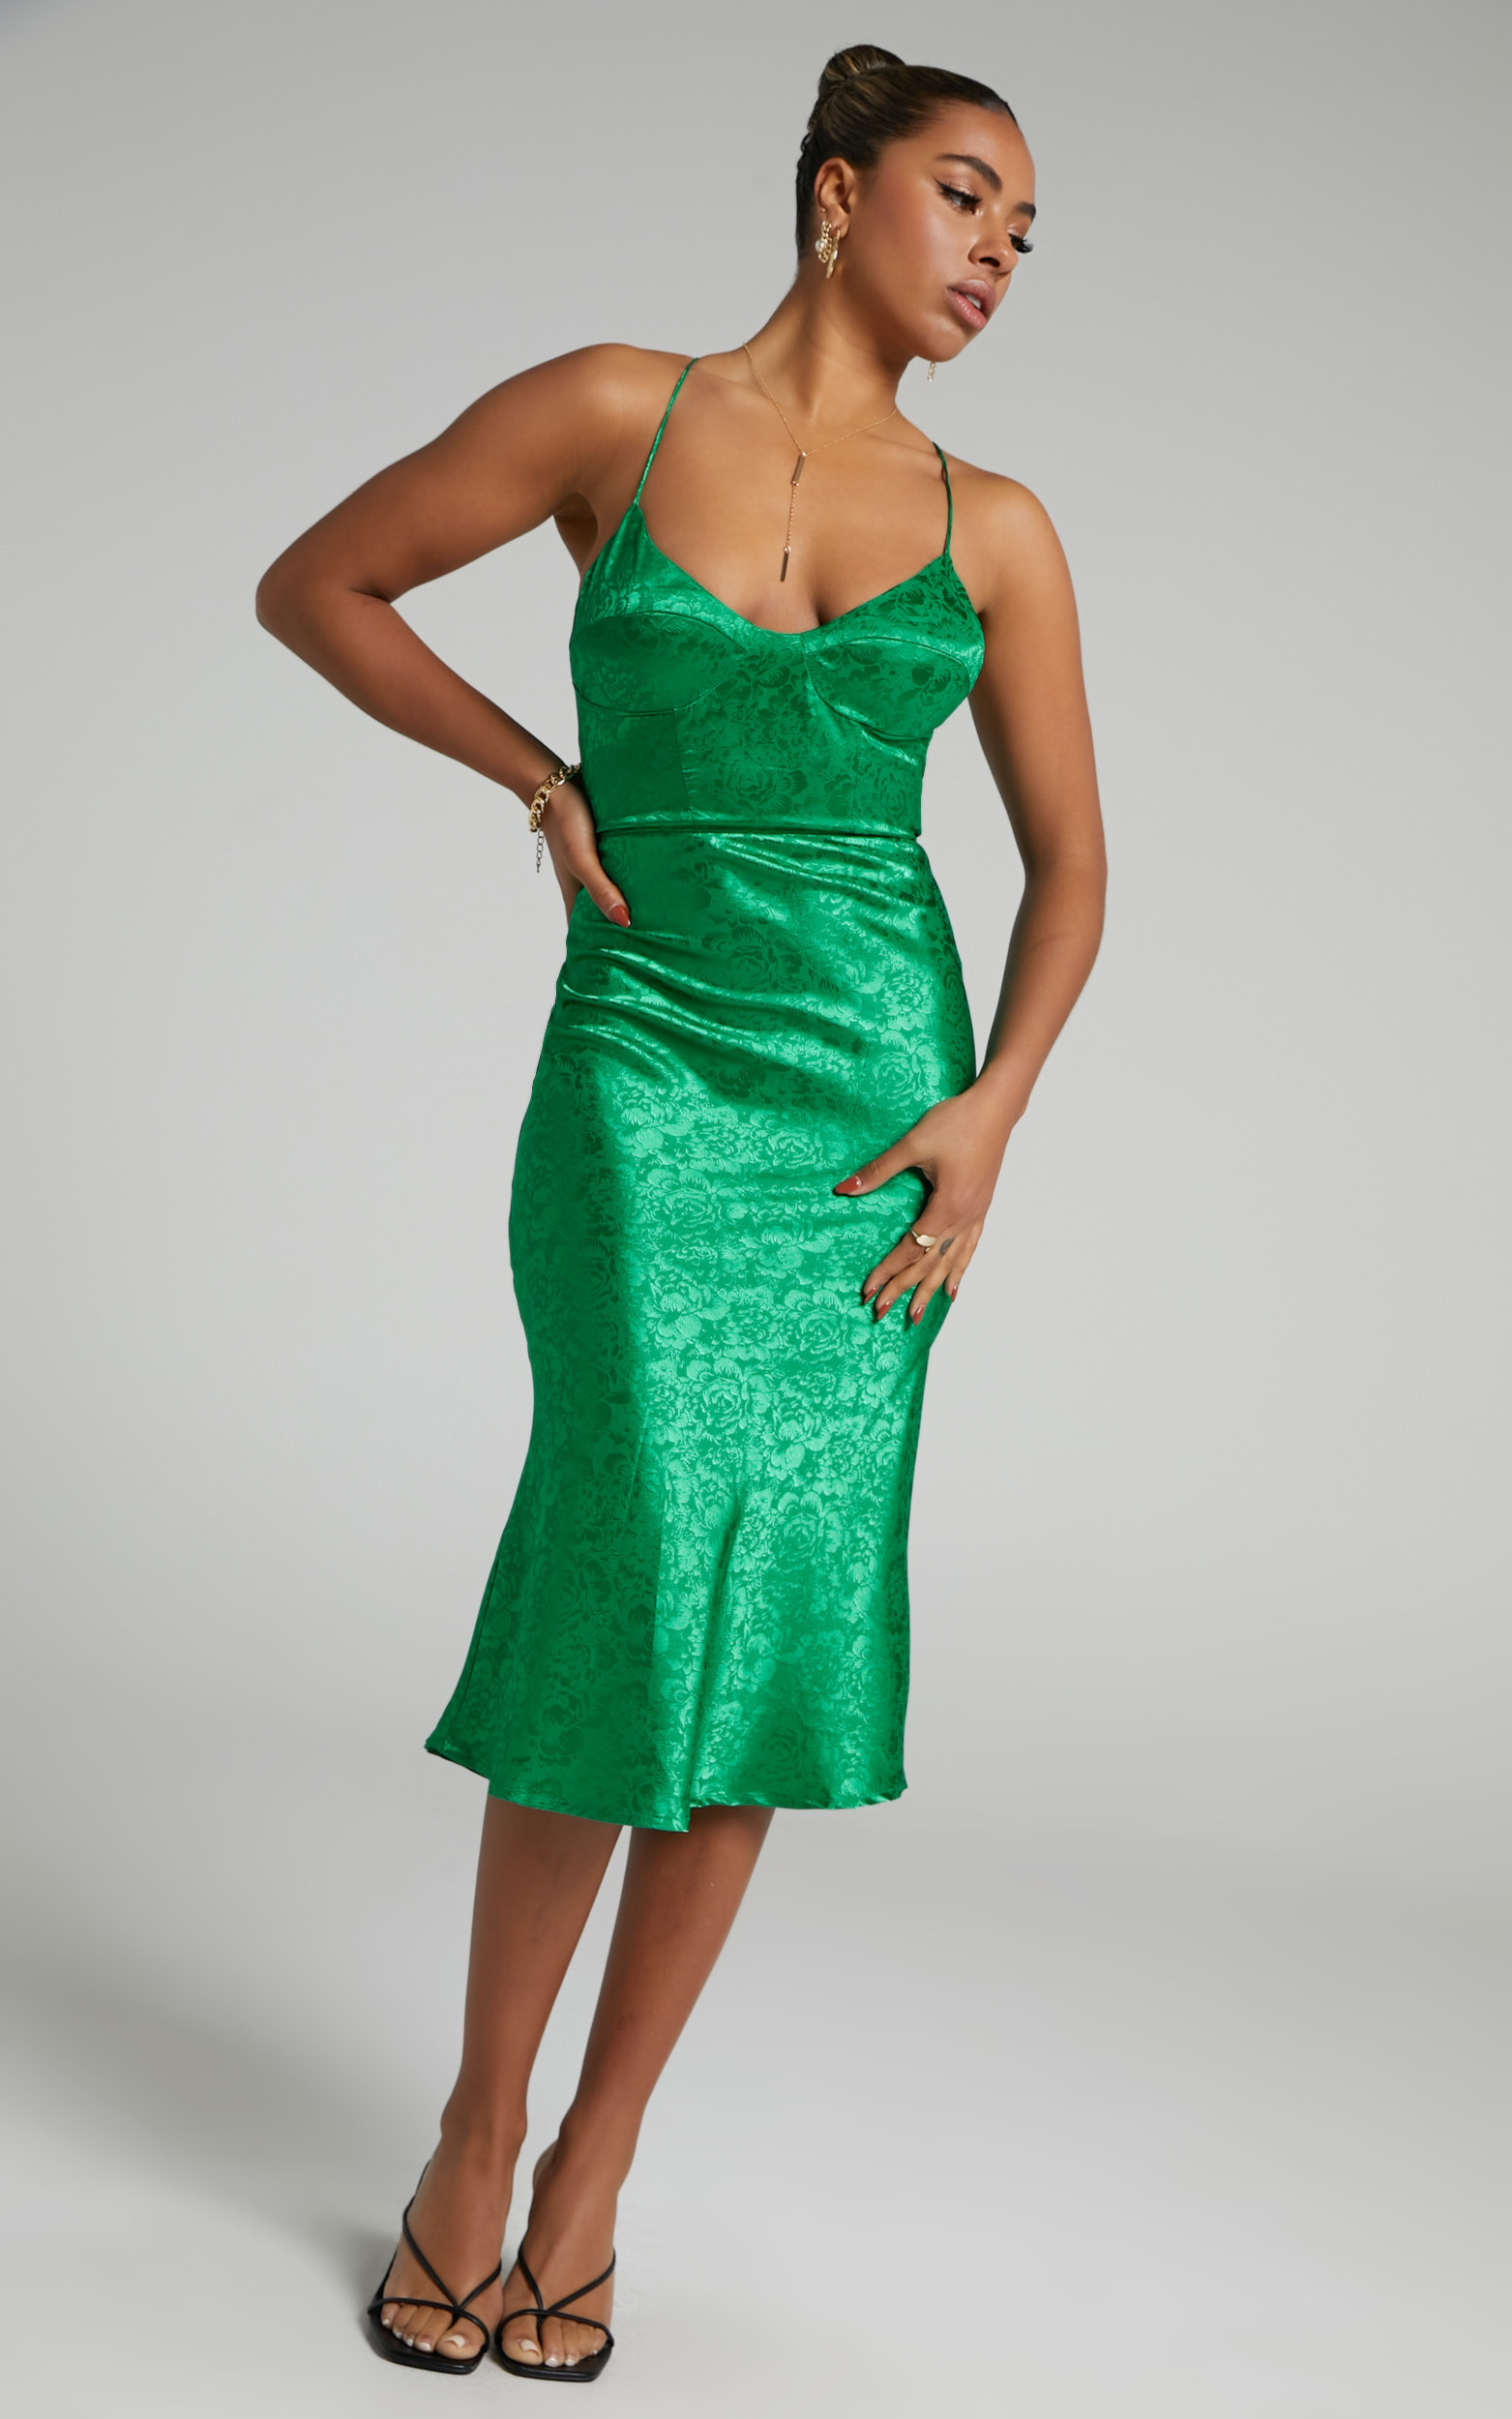 Runaway The Label - Electra Slip Dress in Green - L, GRN2, hi-res image number null